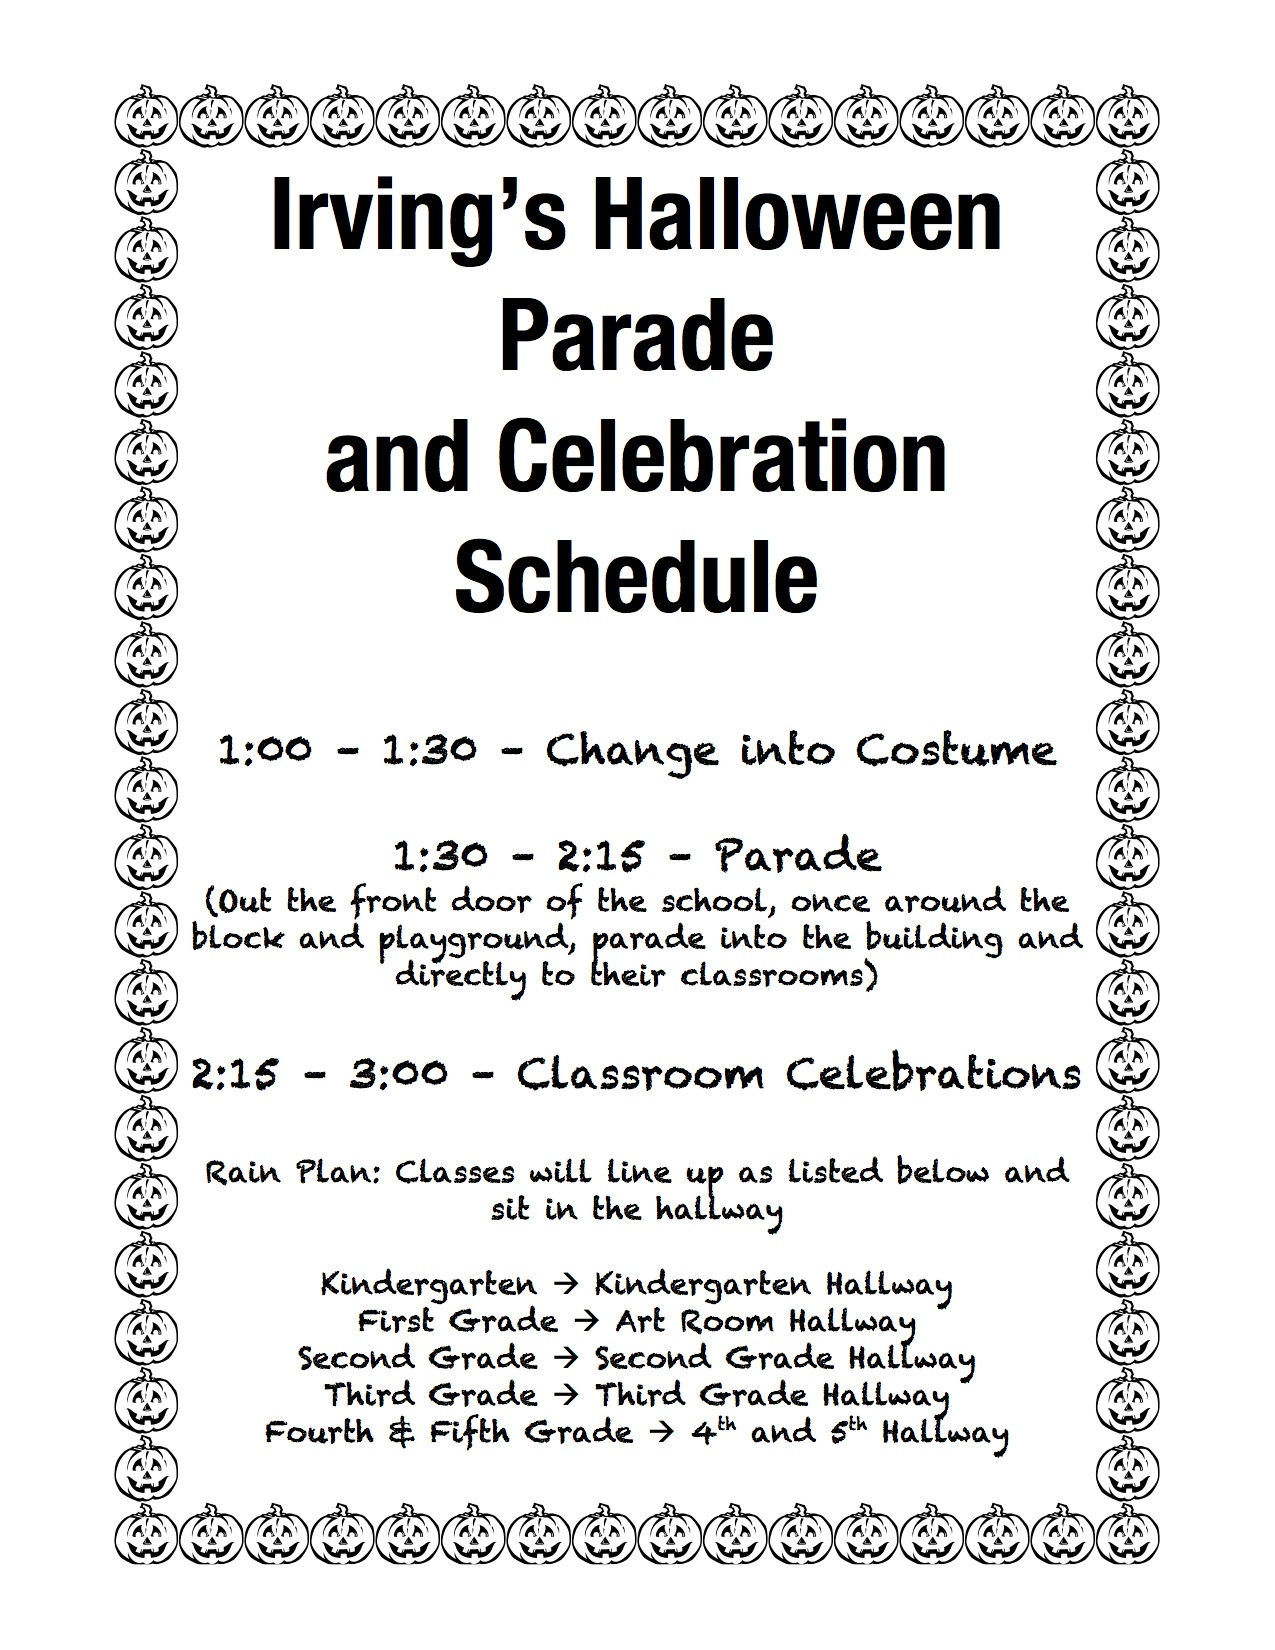 irvings halloween parade schedule